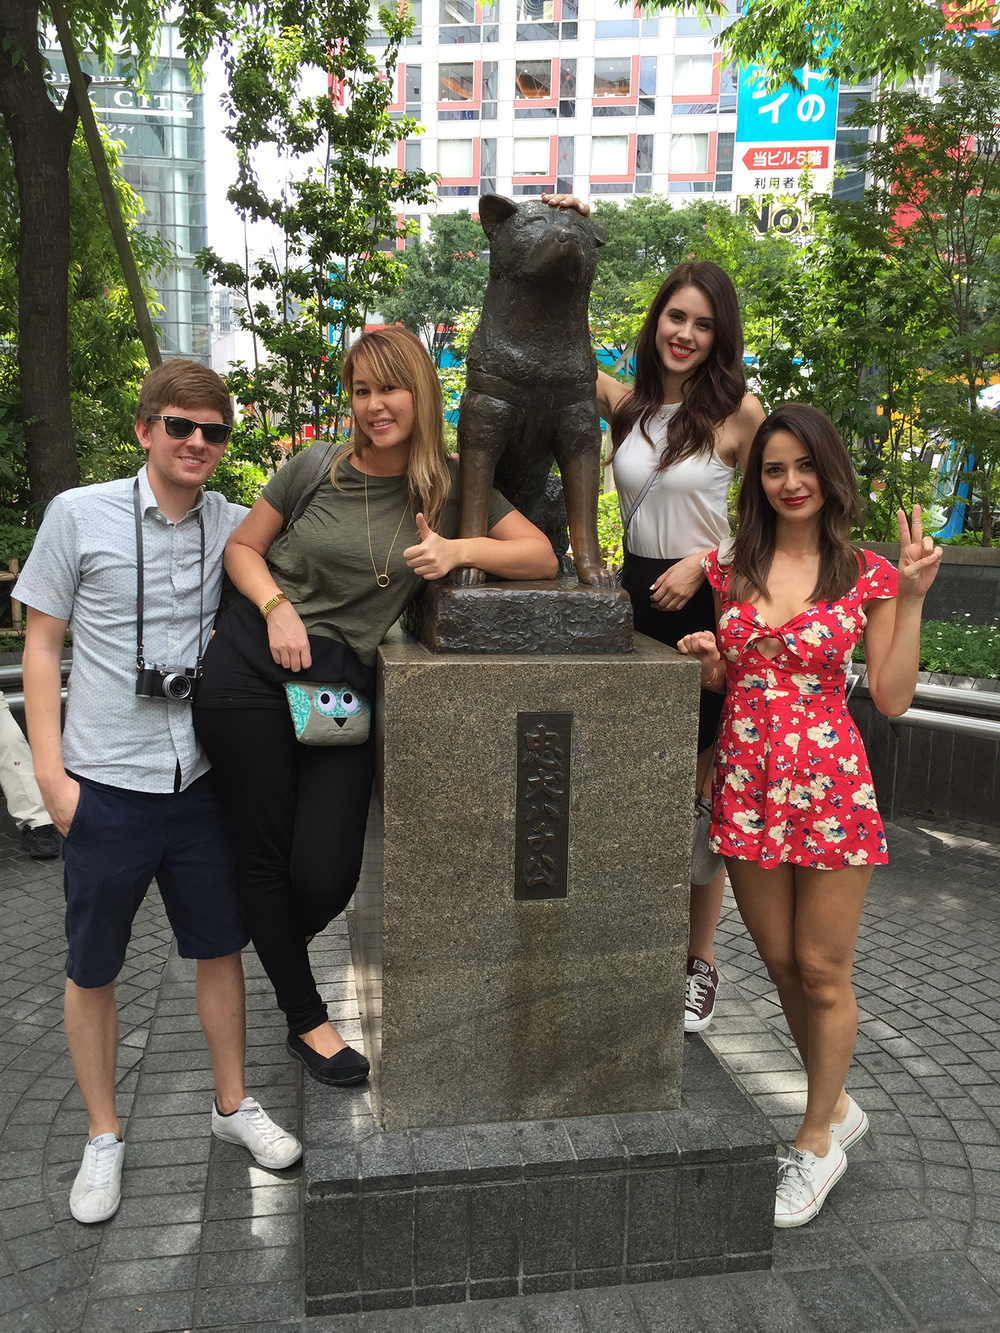 The famous Hachiko meeting spot in Shibuya